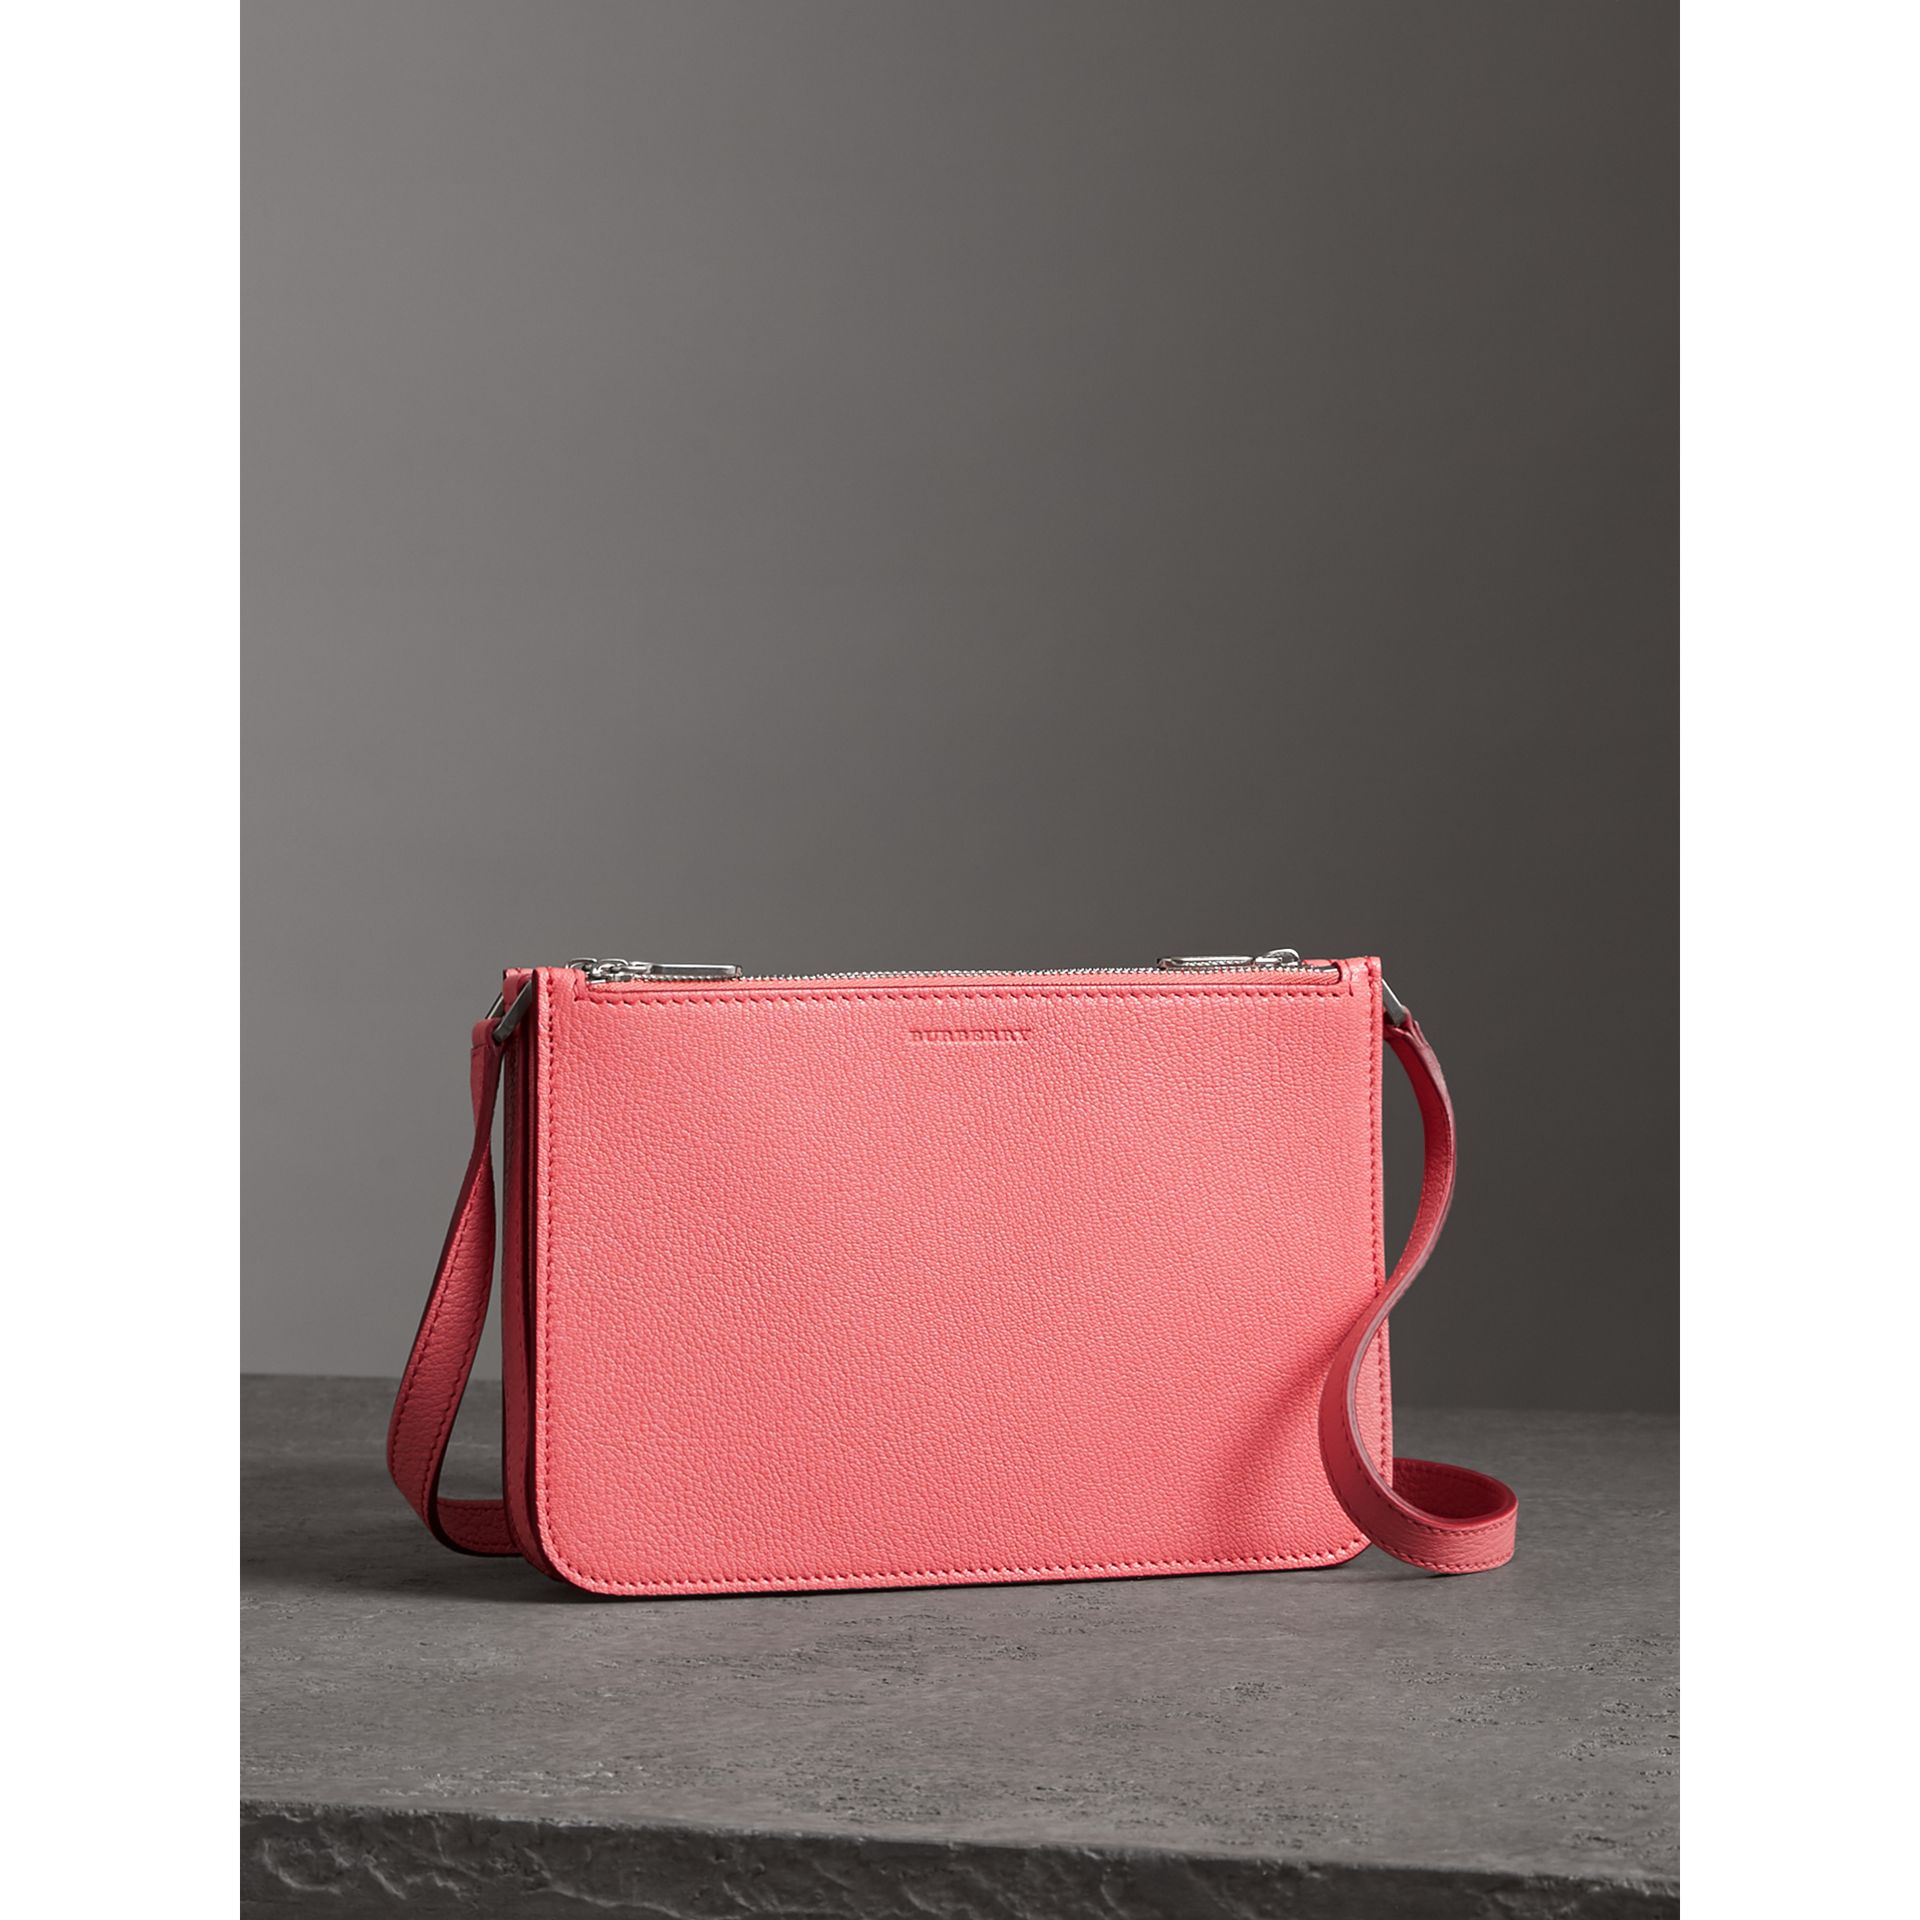 Triple Zip Grainy Leather Crossbody Bag in Bright Coral Pink - Women | Burberry - gallery image 4